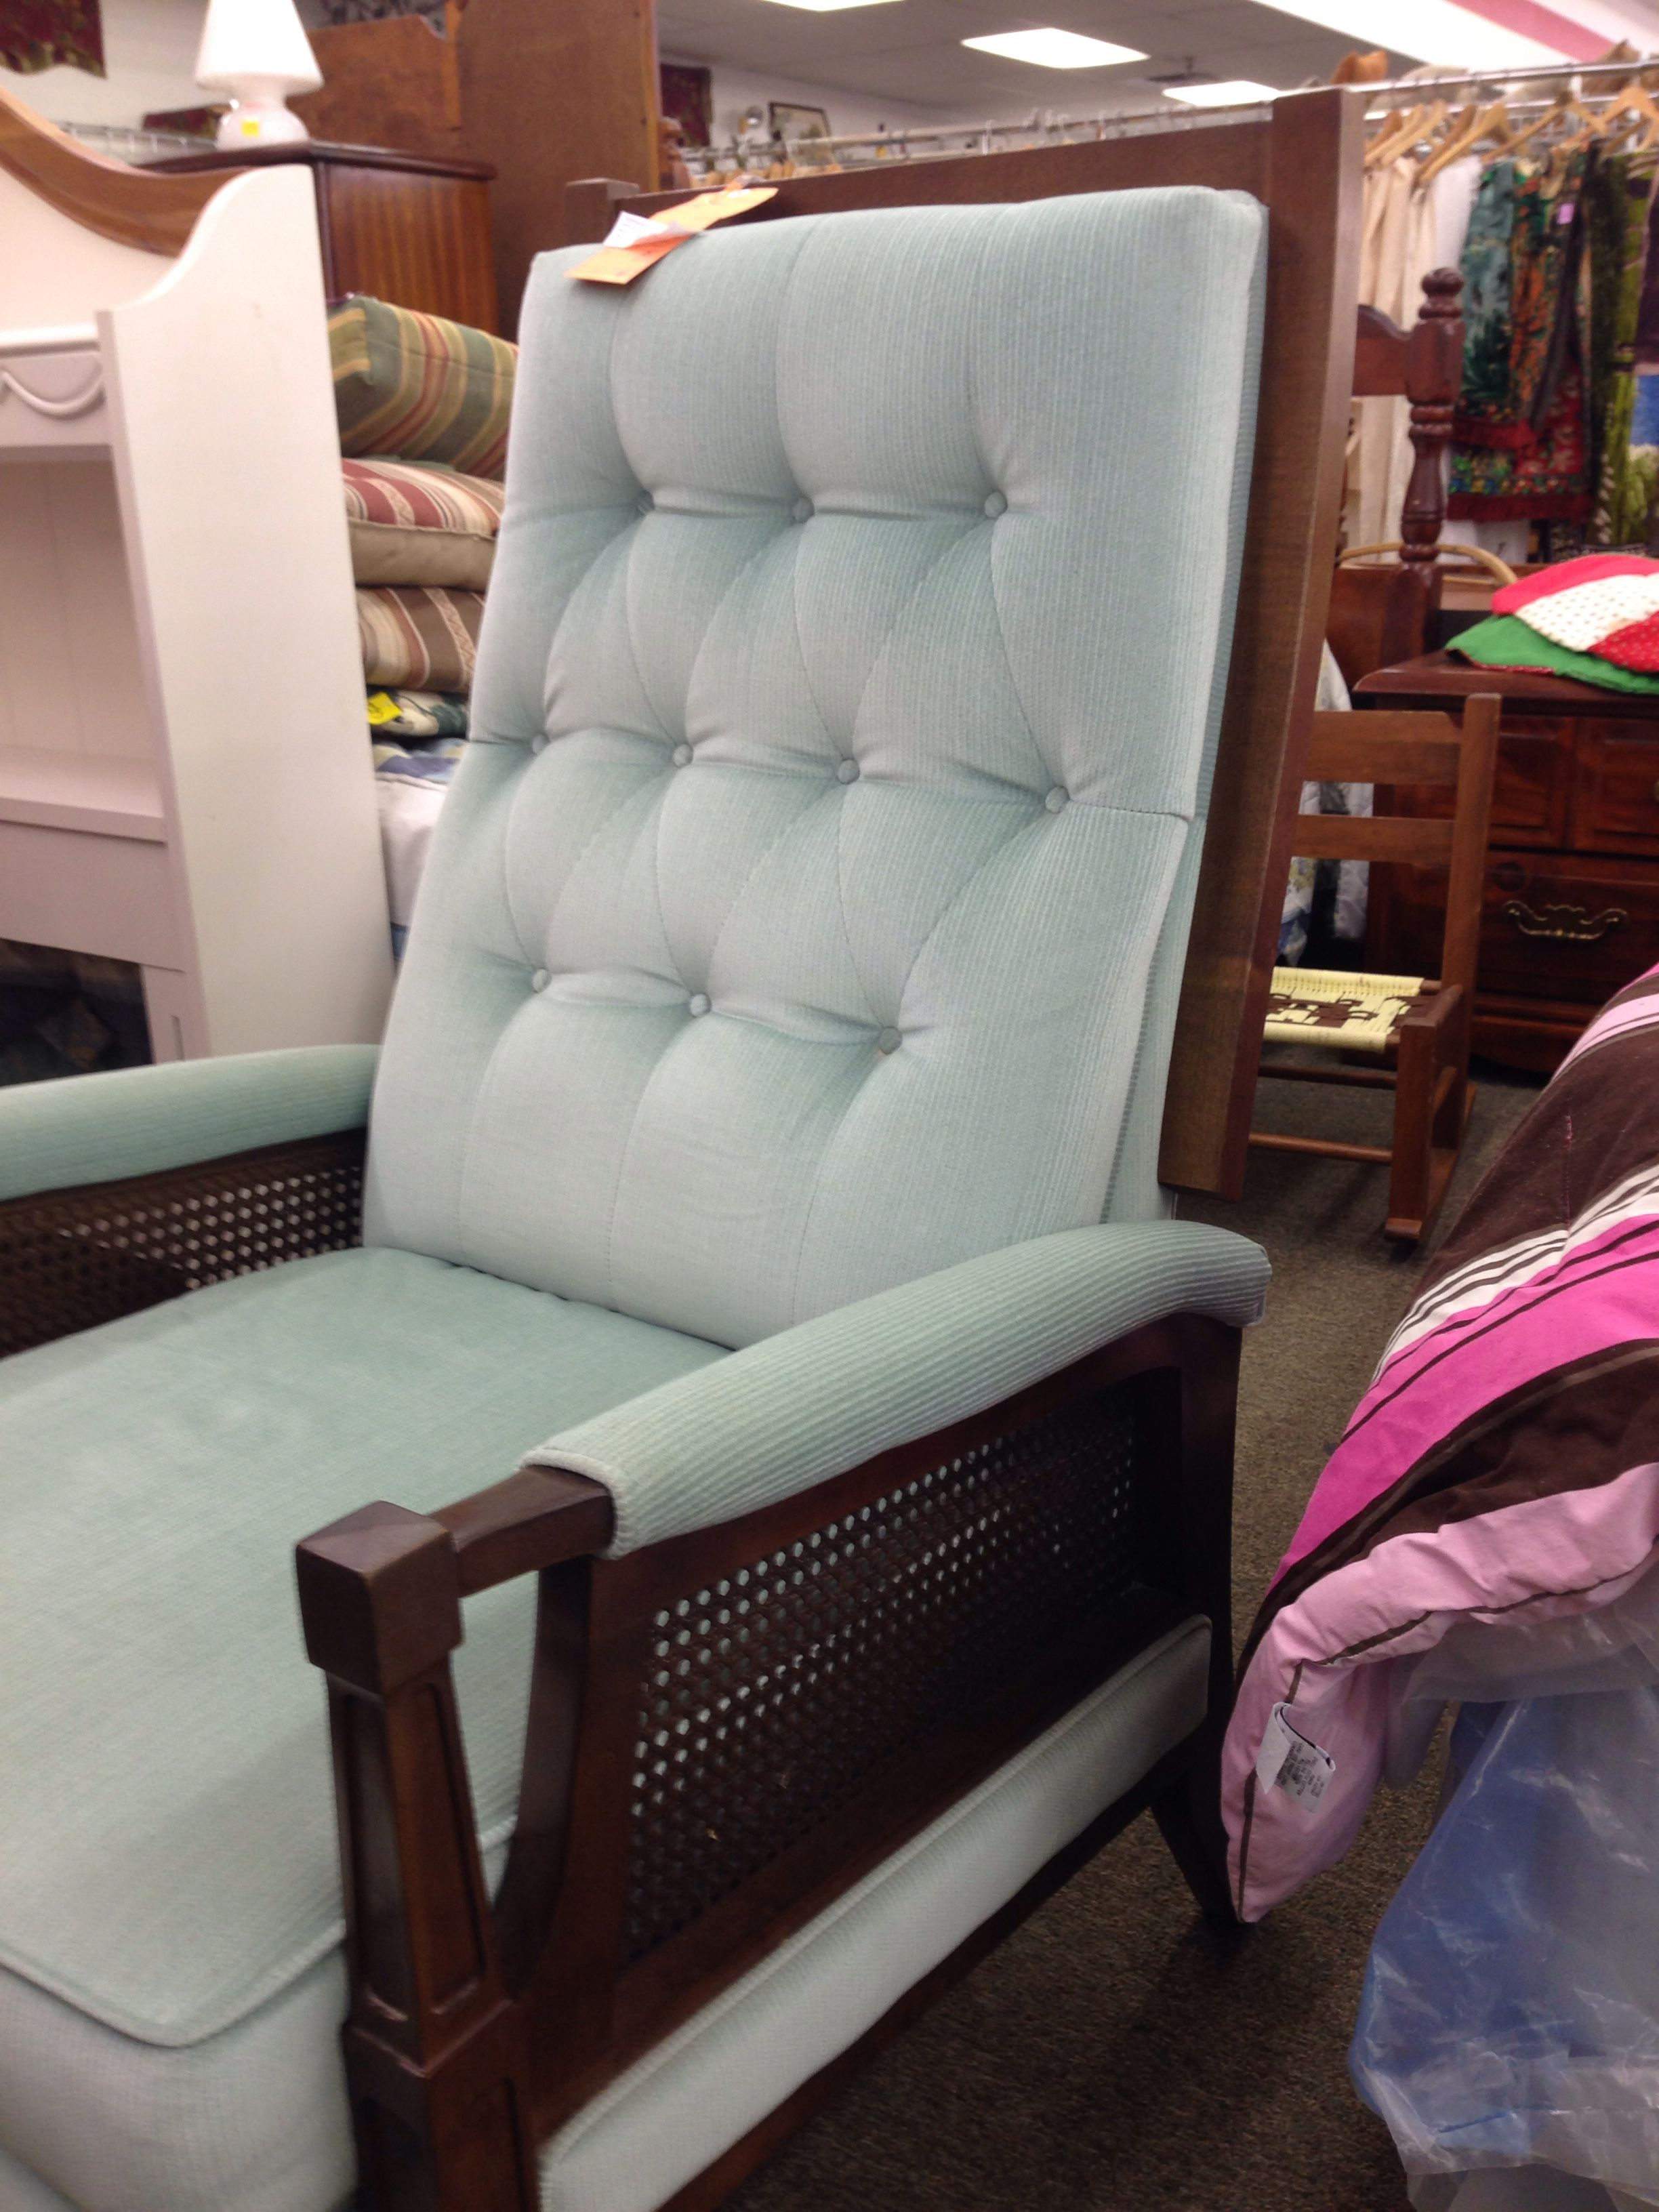 Blue Lazyboy recliner with cane sides for CeCe's room